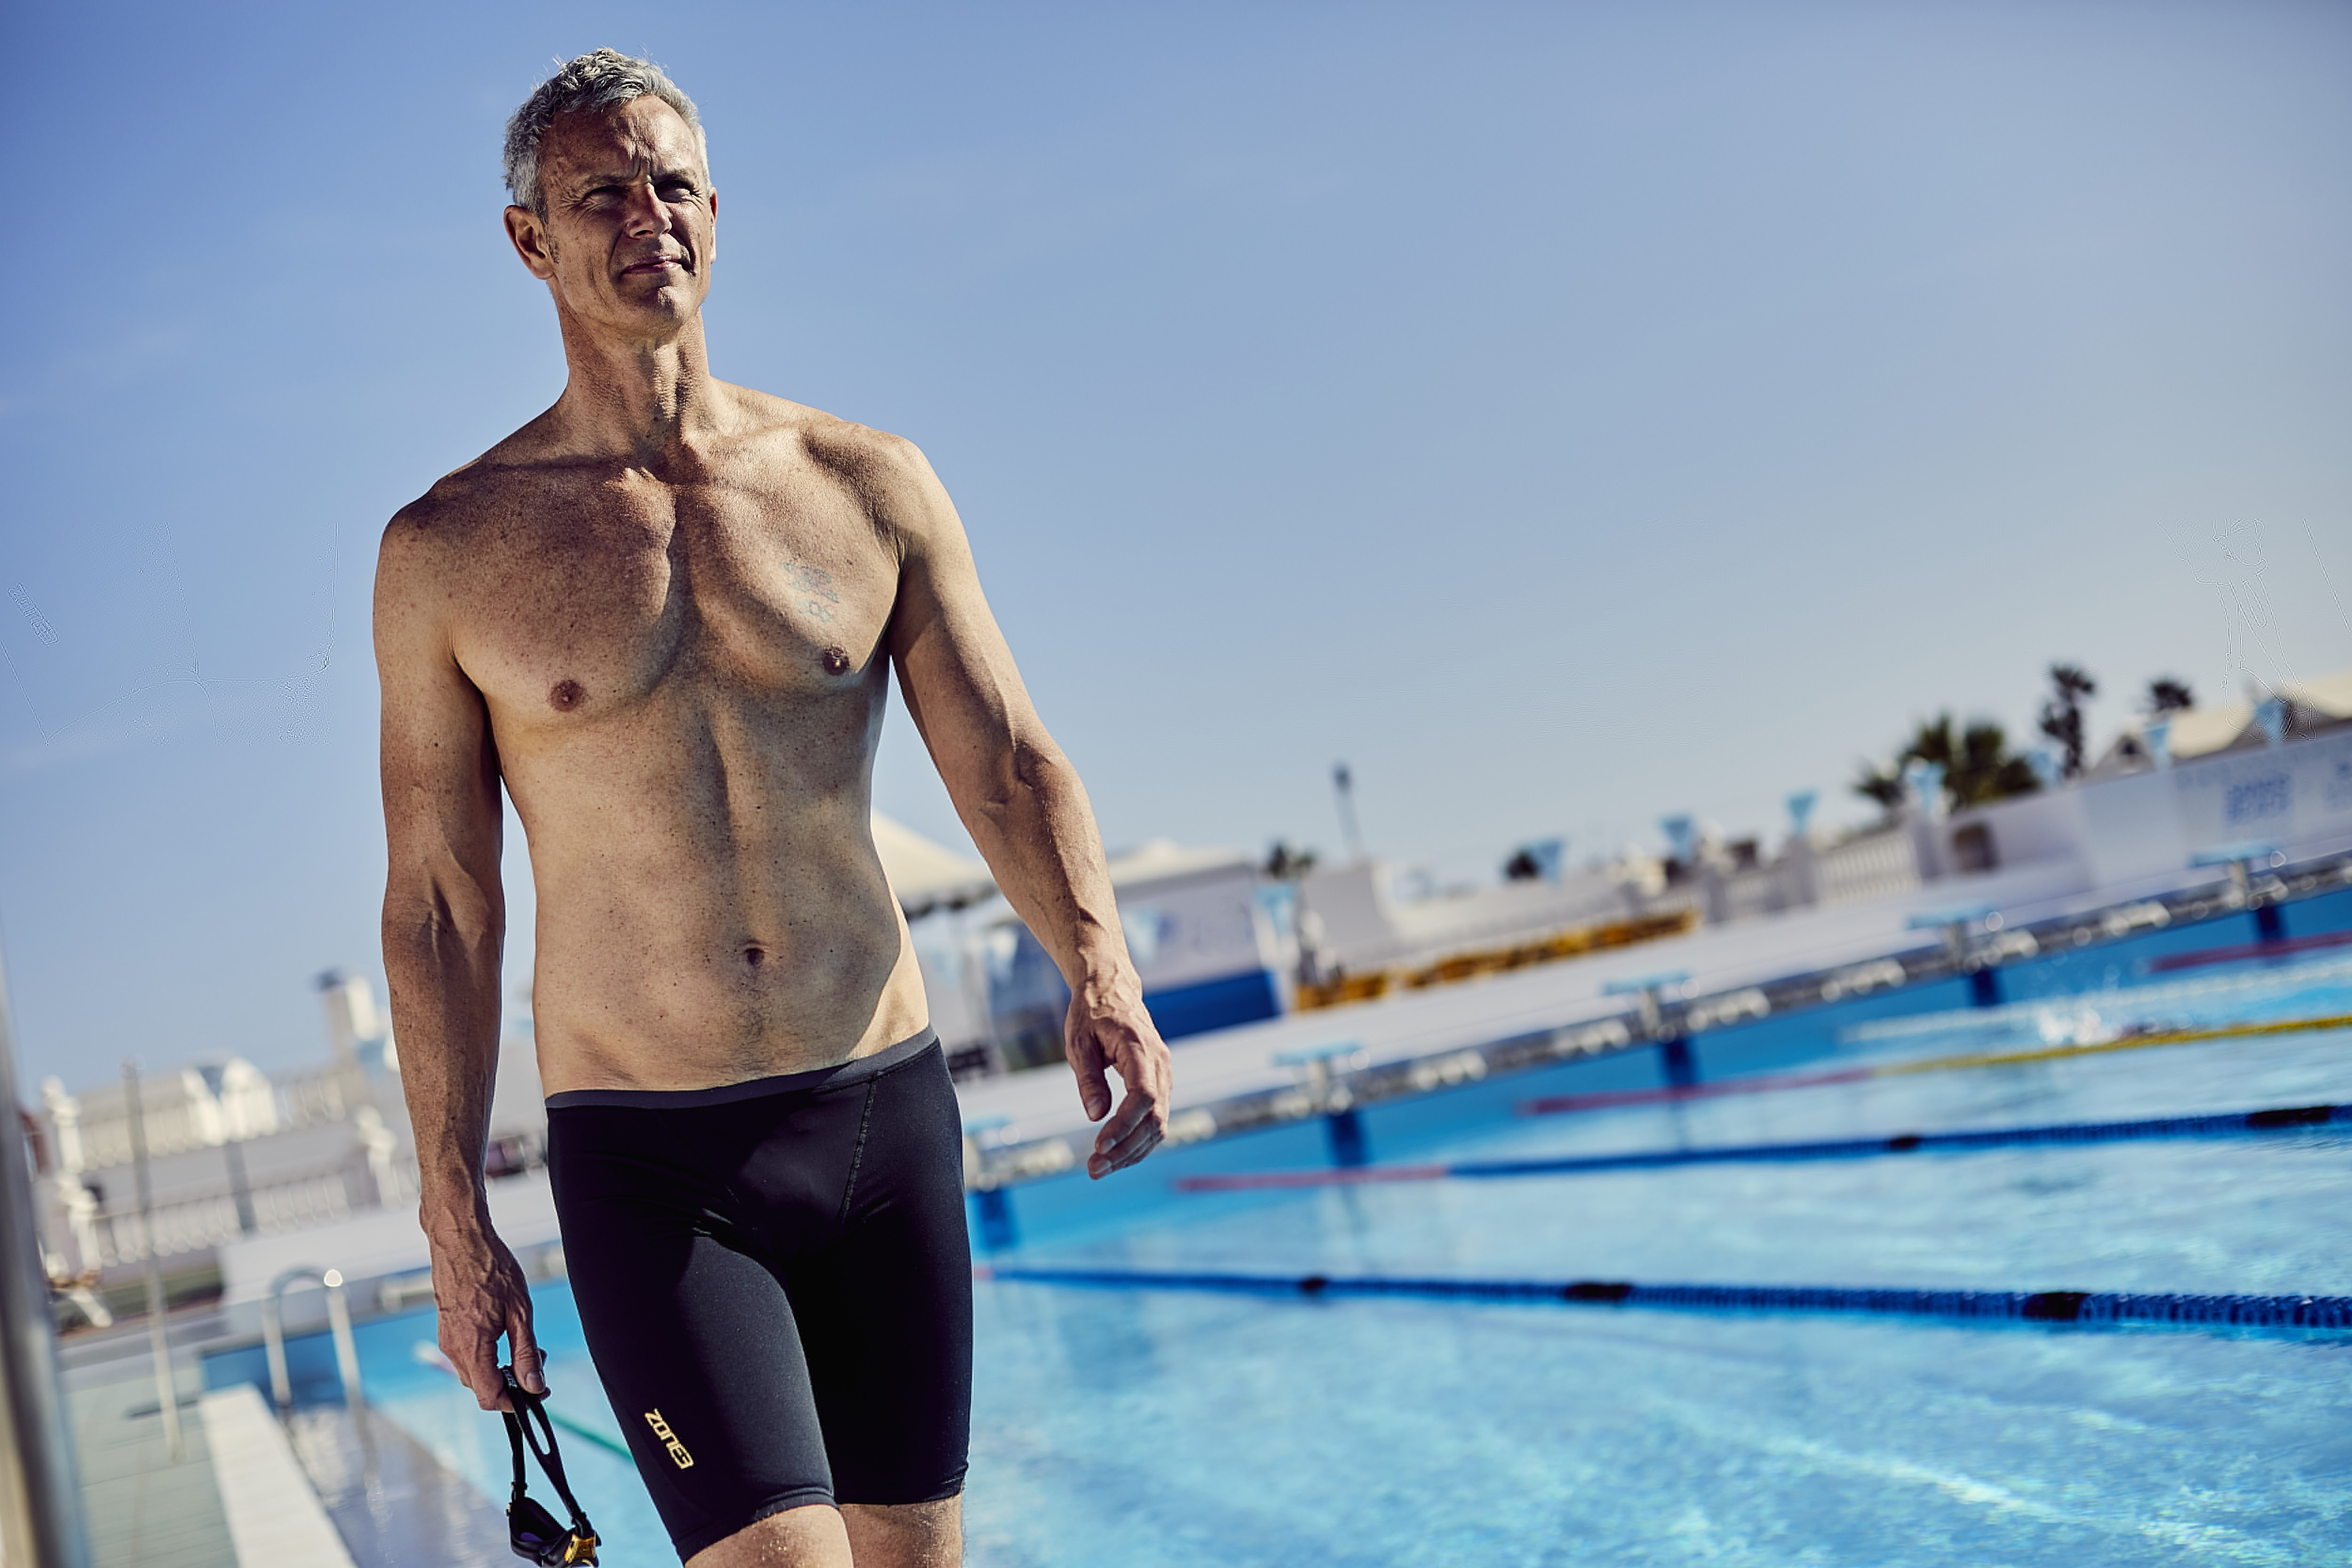 Mark Fosters tips for improving your swimming technique